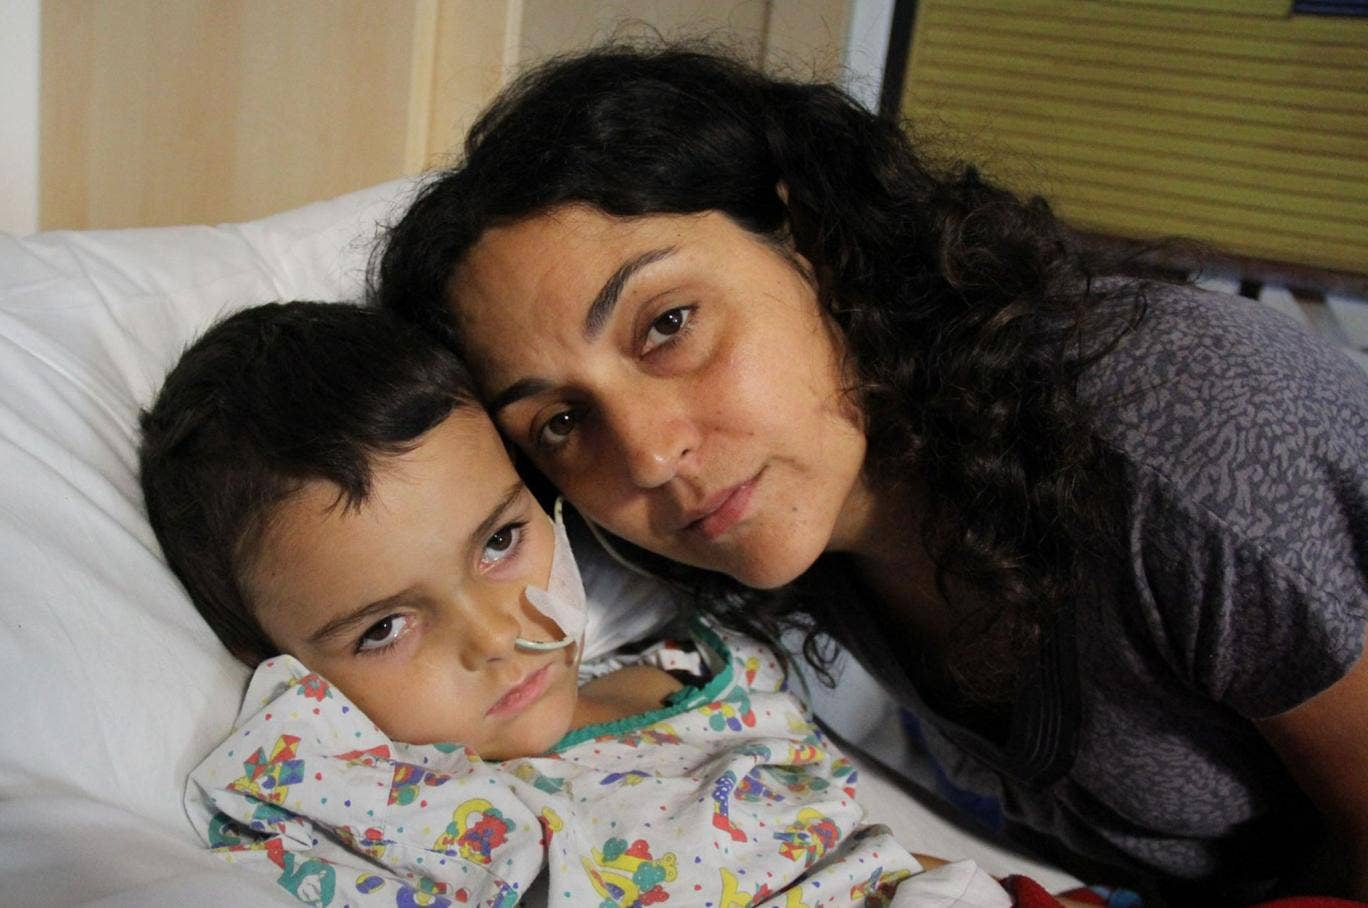 Ashya was receiving treatment for a brain tumour